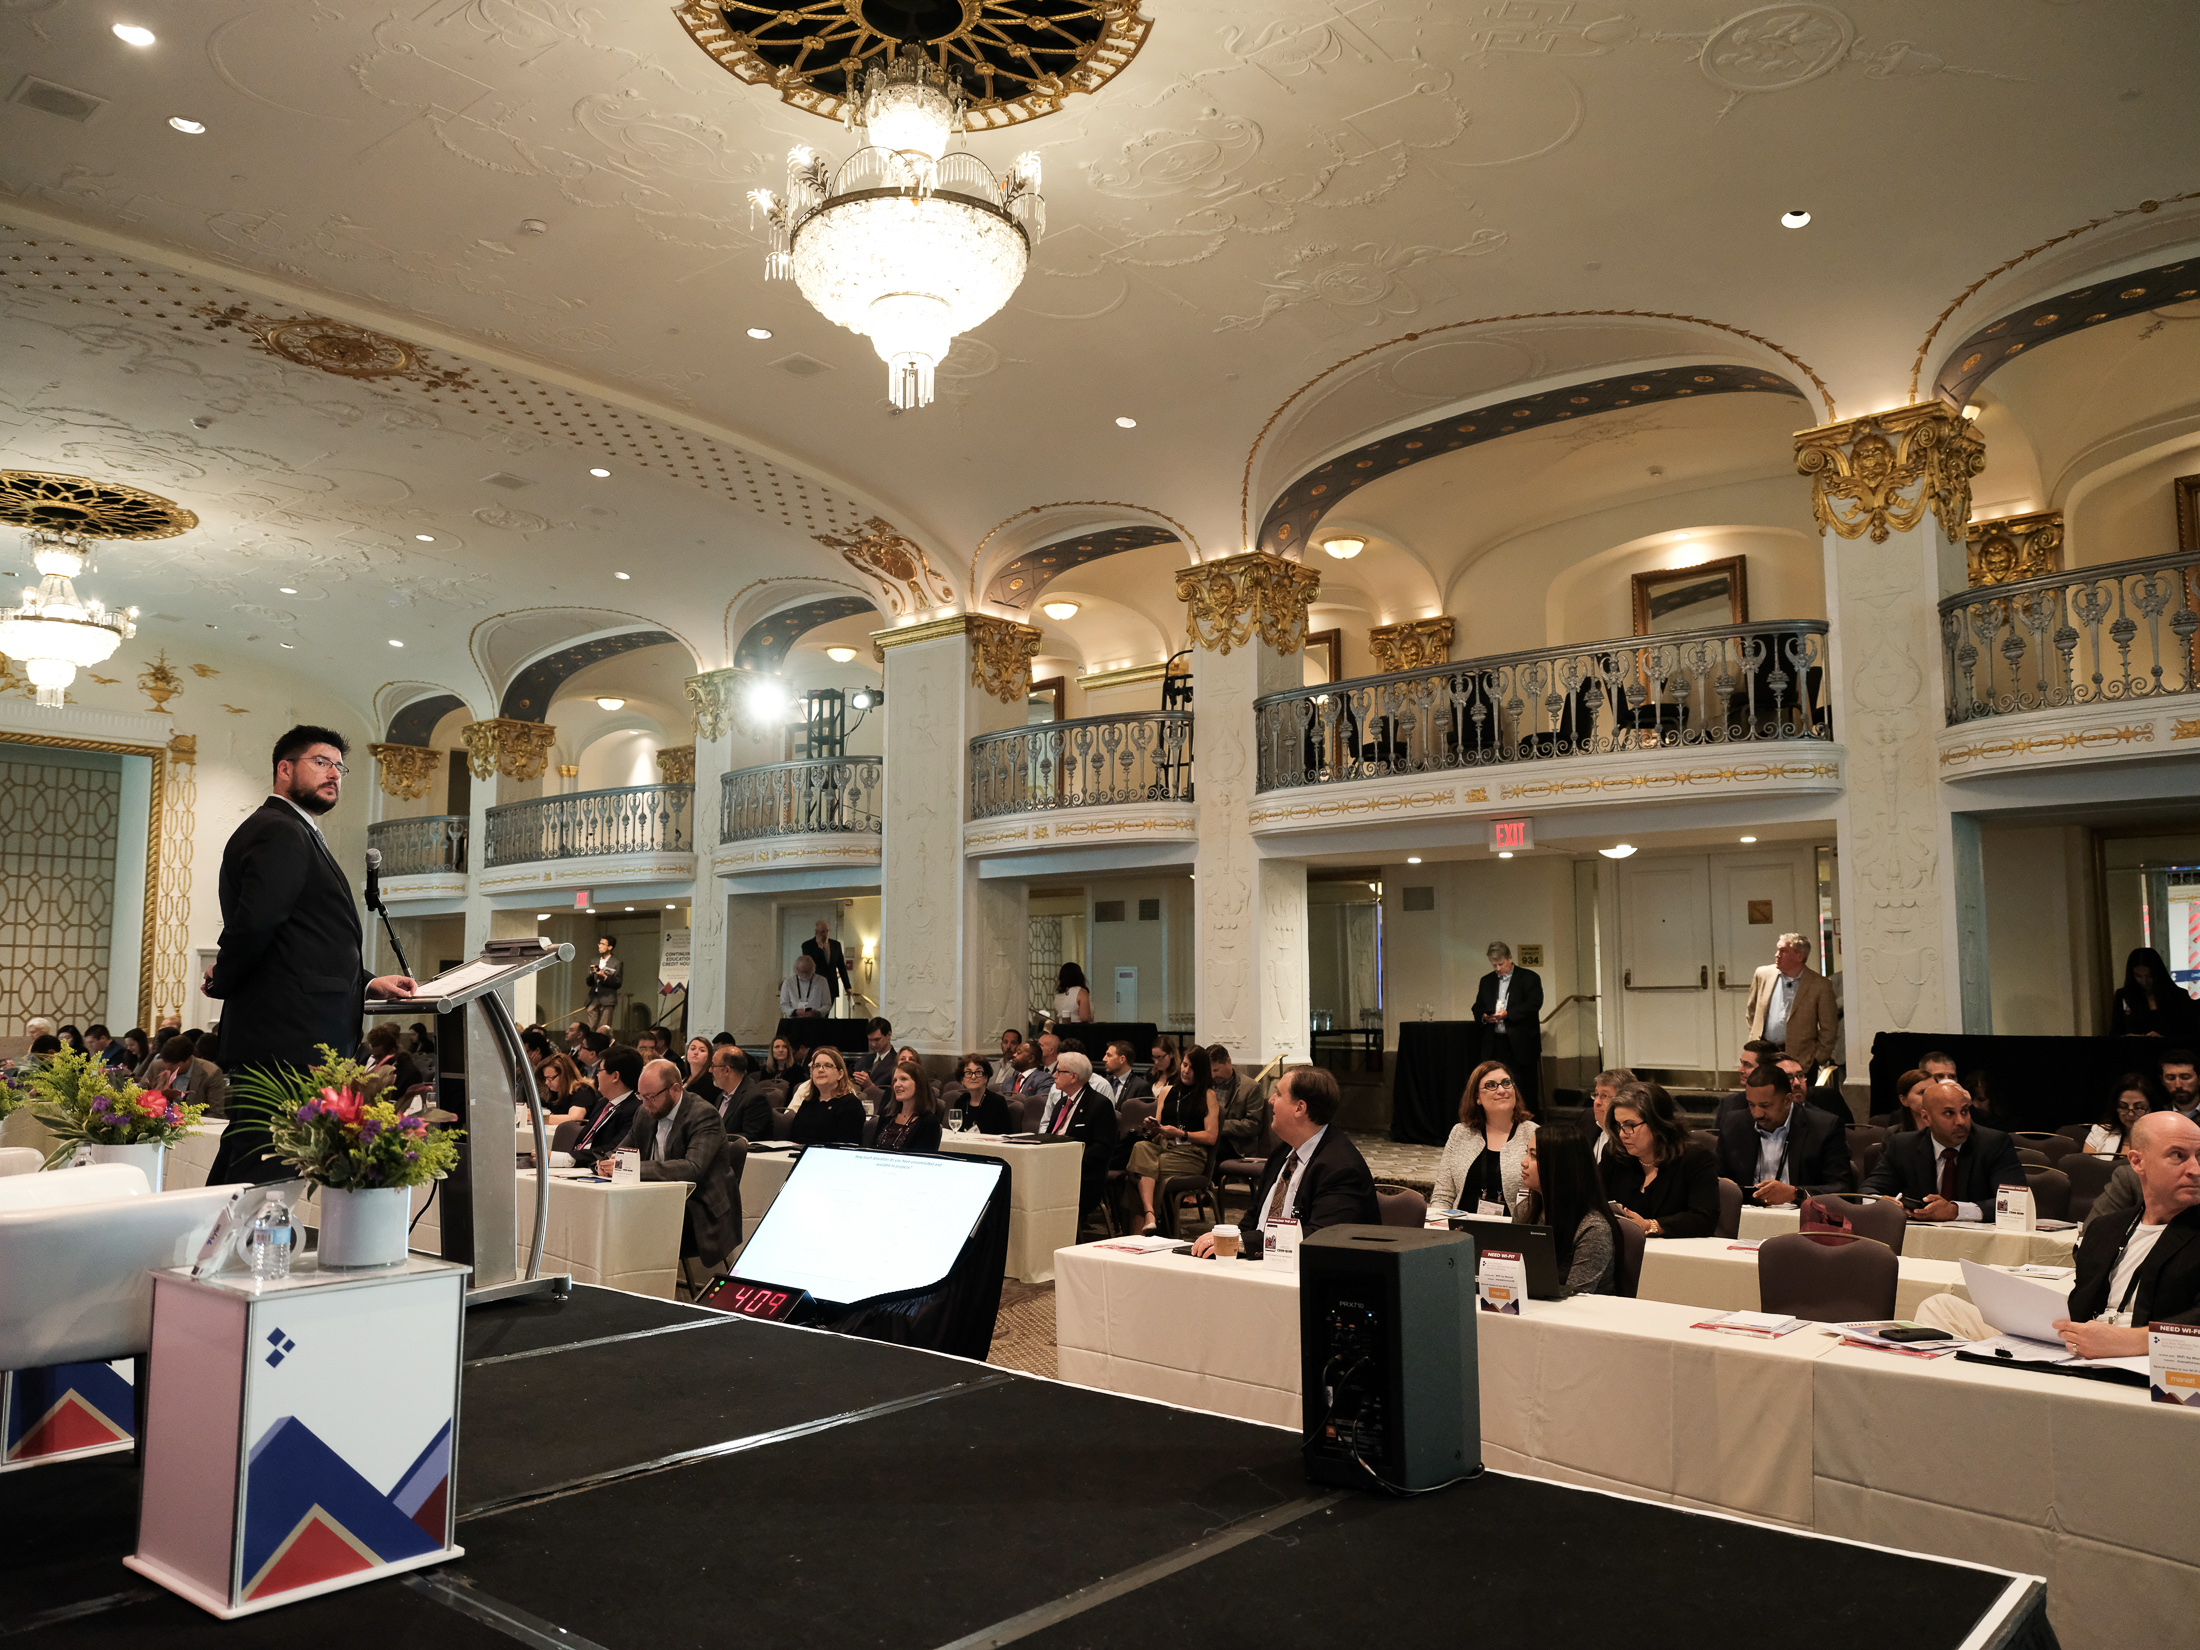 dc-conference-photographer-1455.jpg